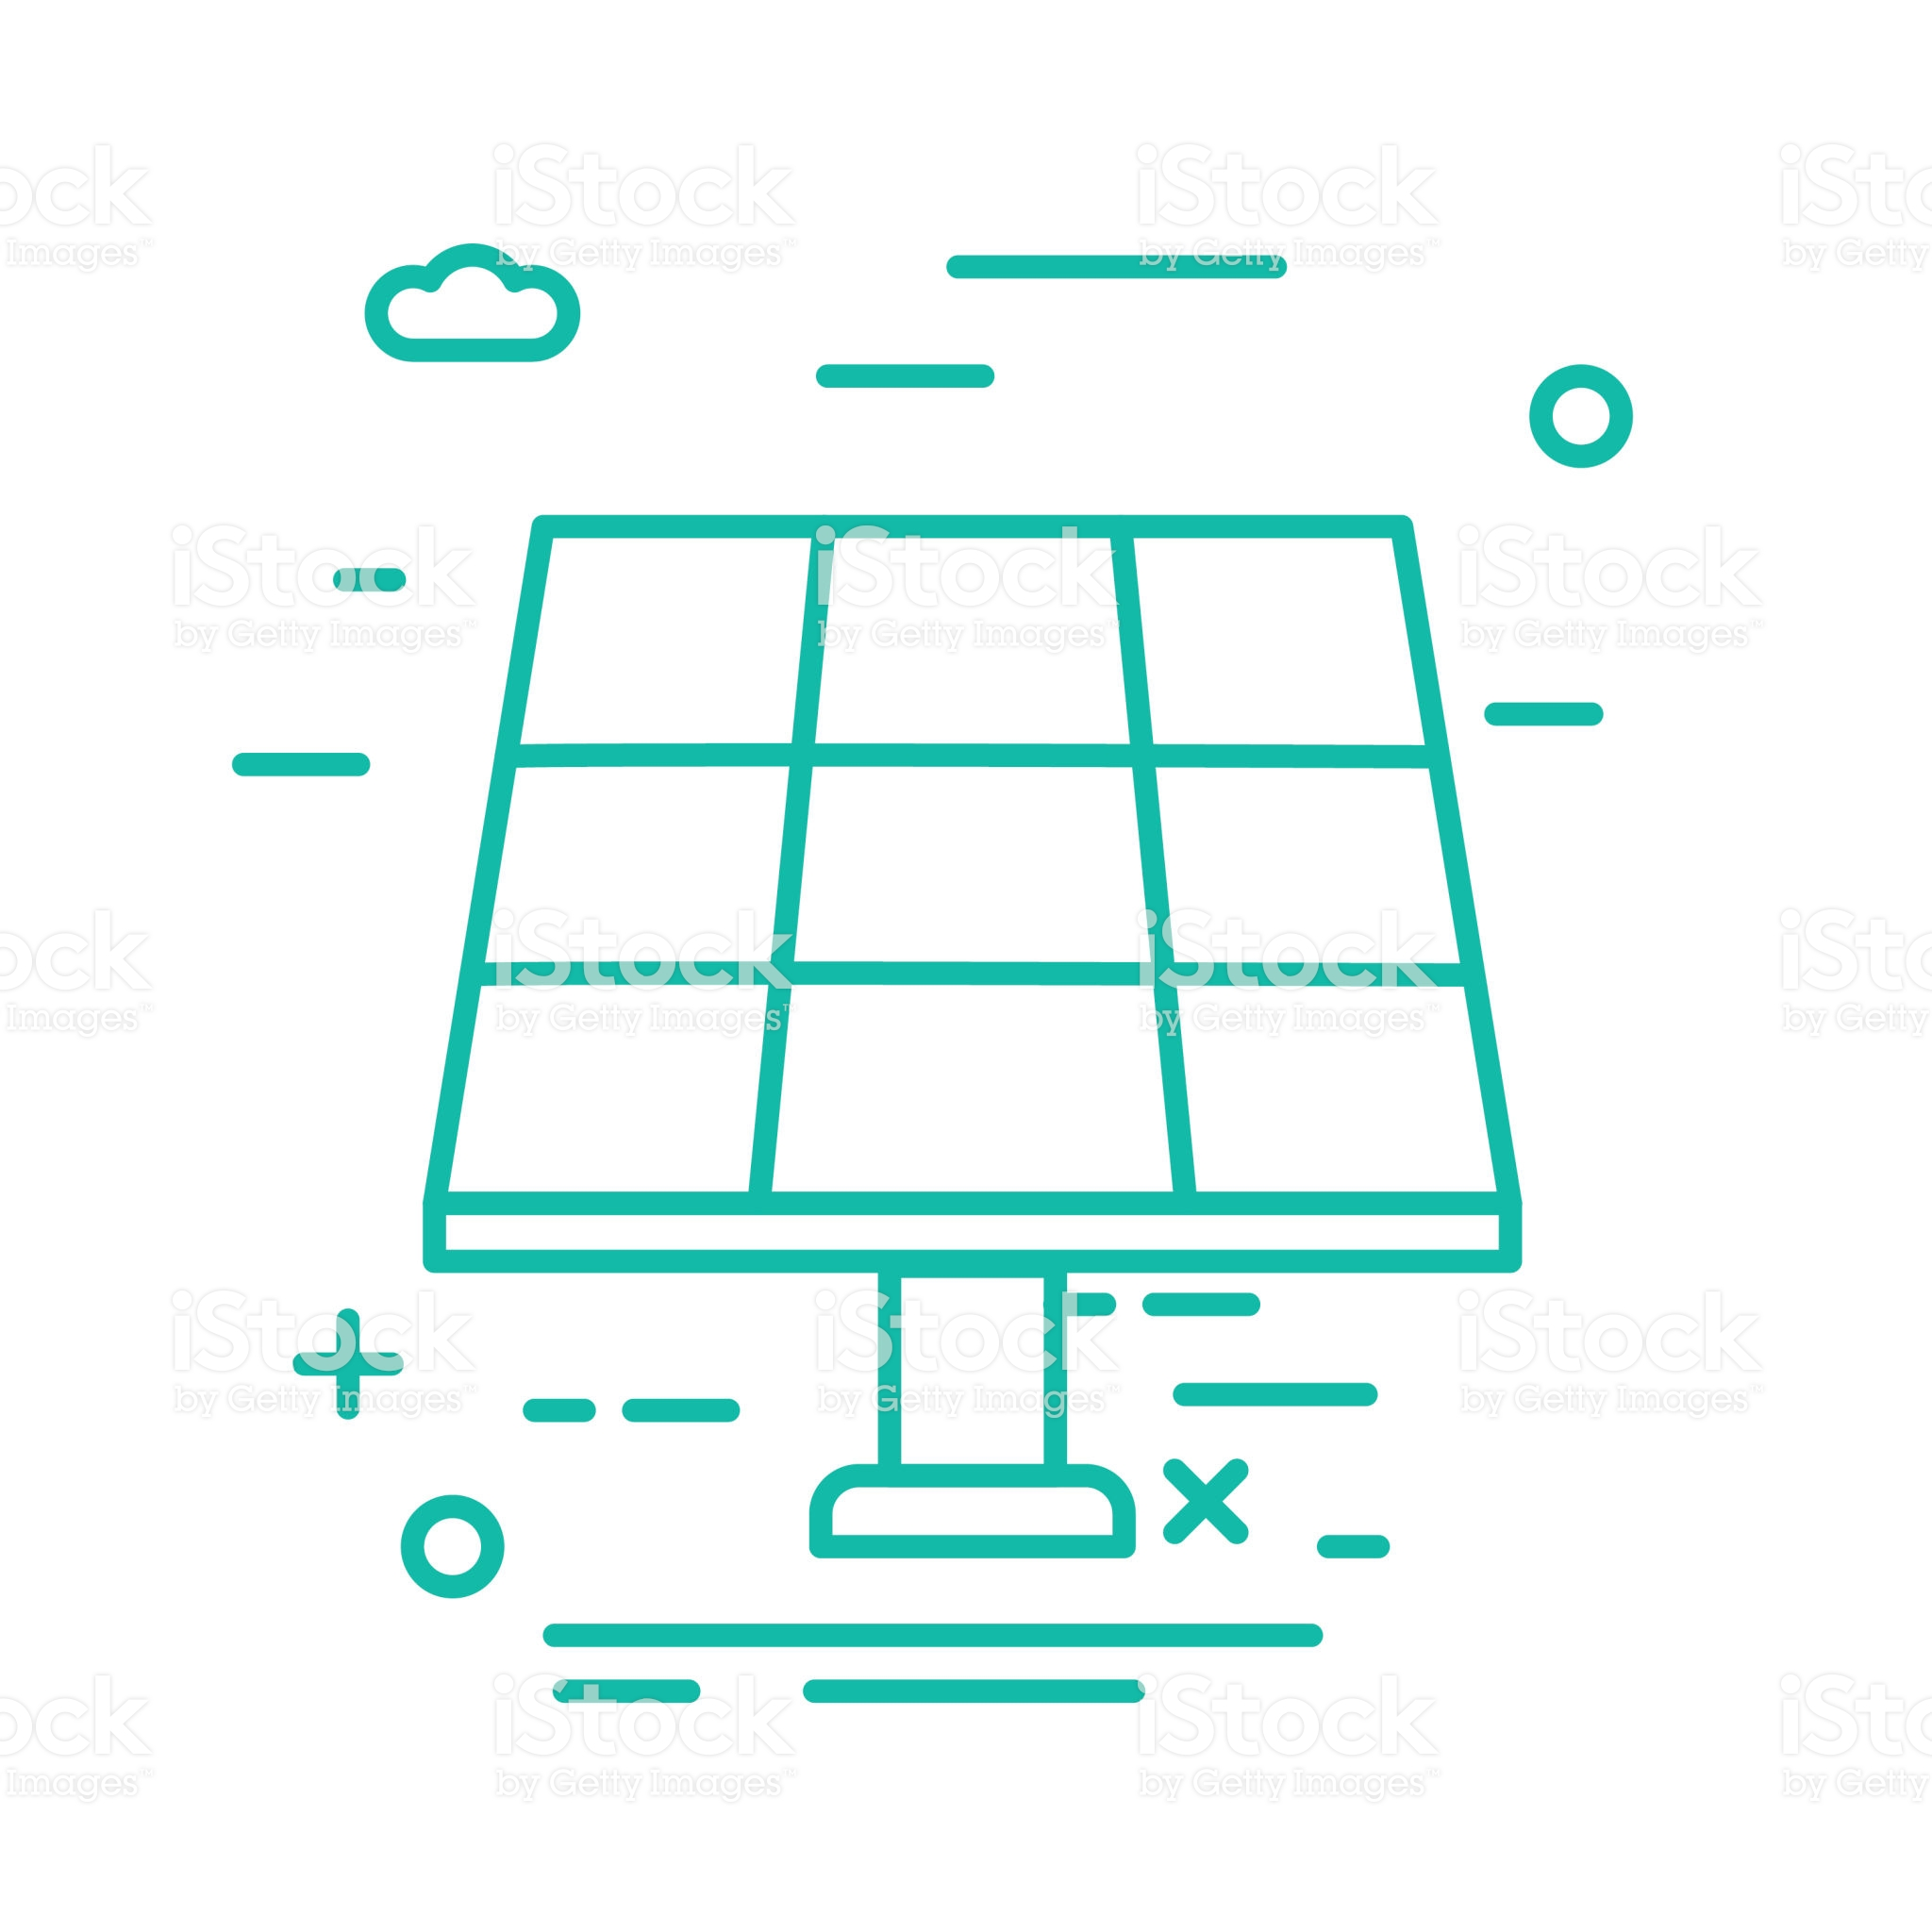 Solar Panel Environment Icon In Thin Line Flat Design Style Alternative Energy Projects Energy Logo Energy Projects